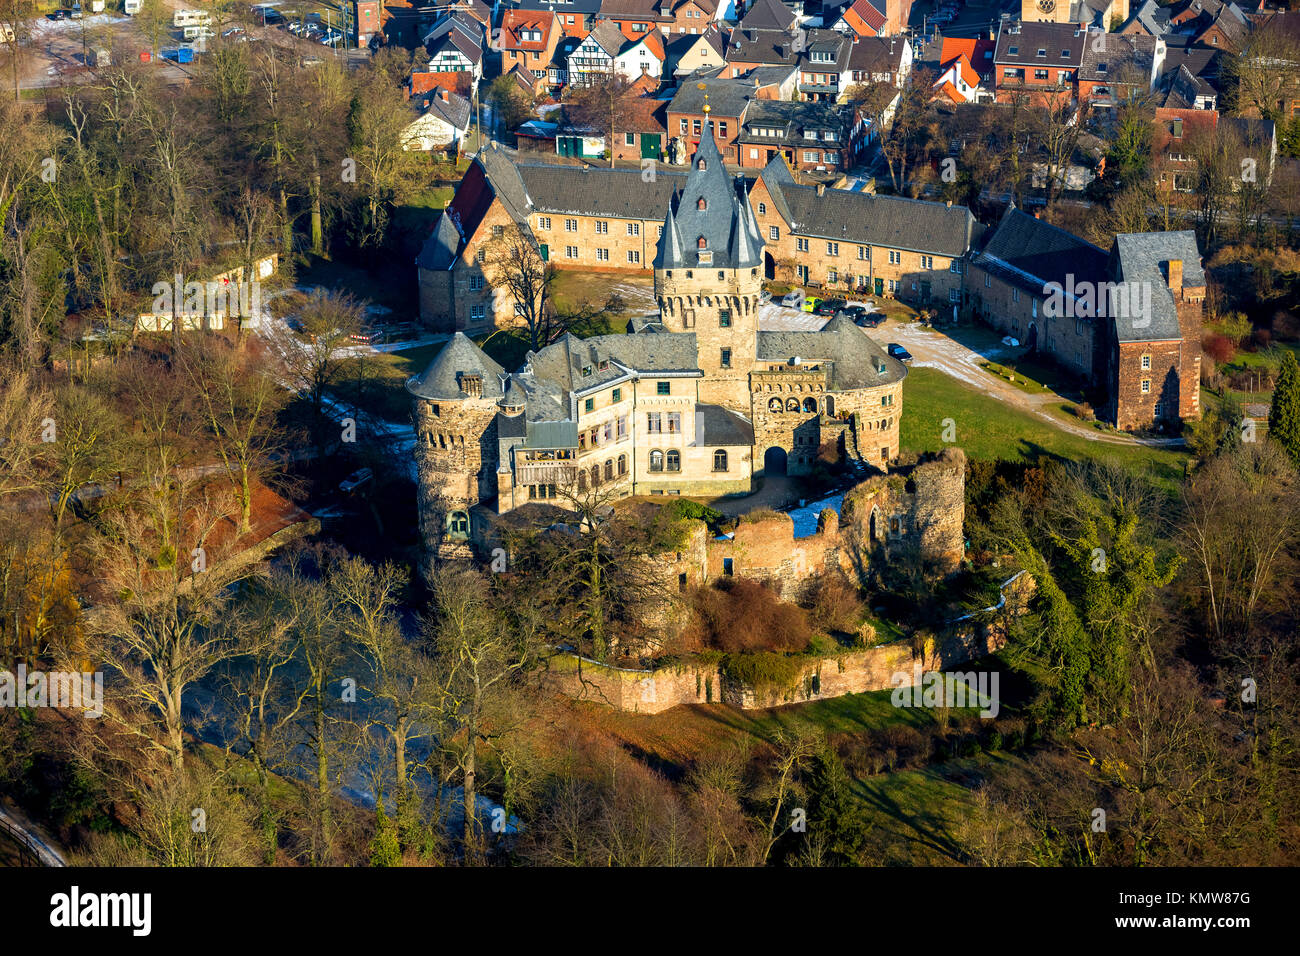 Castle Hülchrath is a former Electorate of Cologne country castle in Grevenbroich quarter Hülchrath, moated - Stock Image